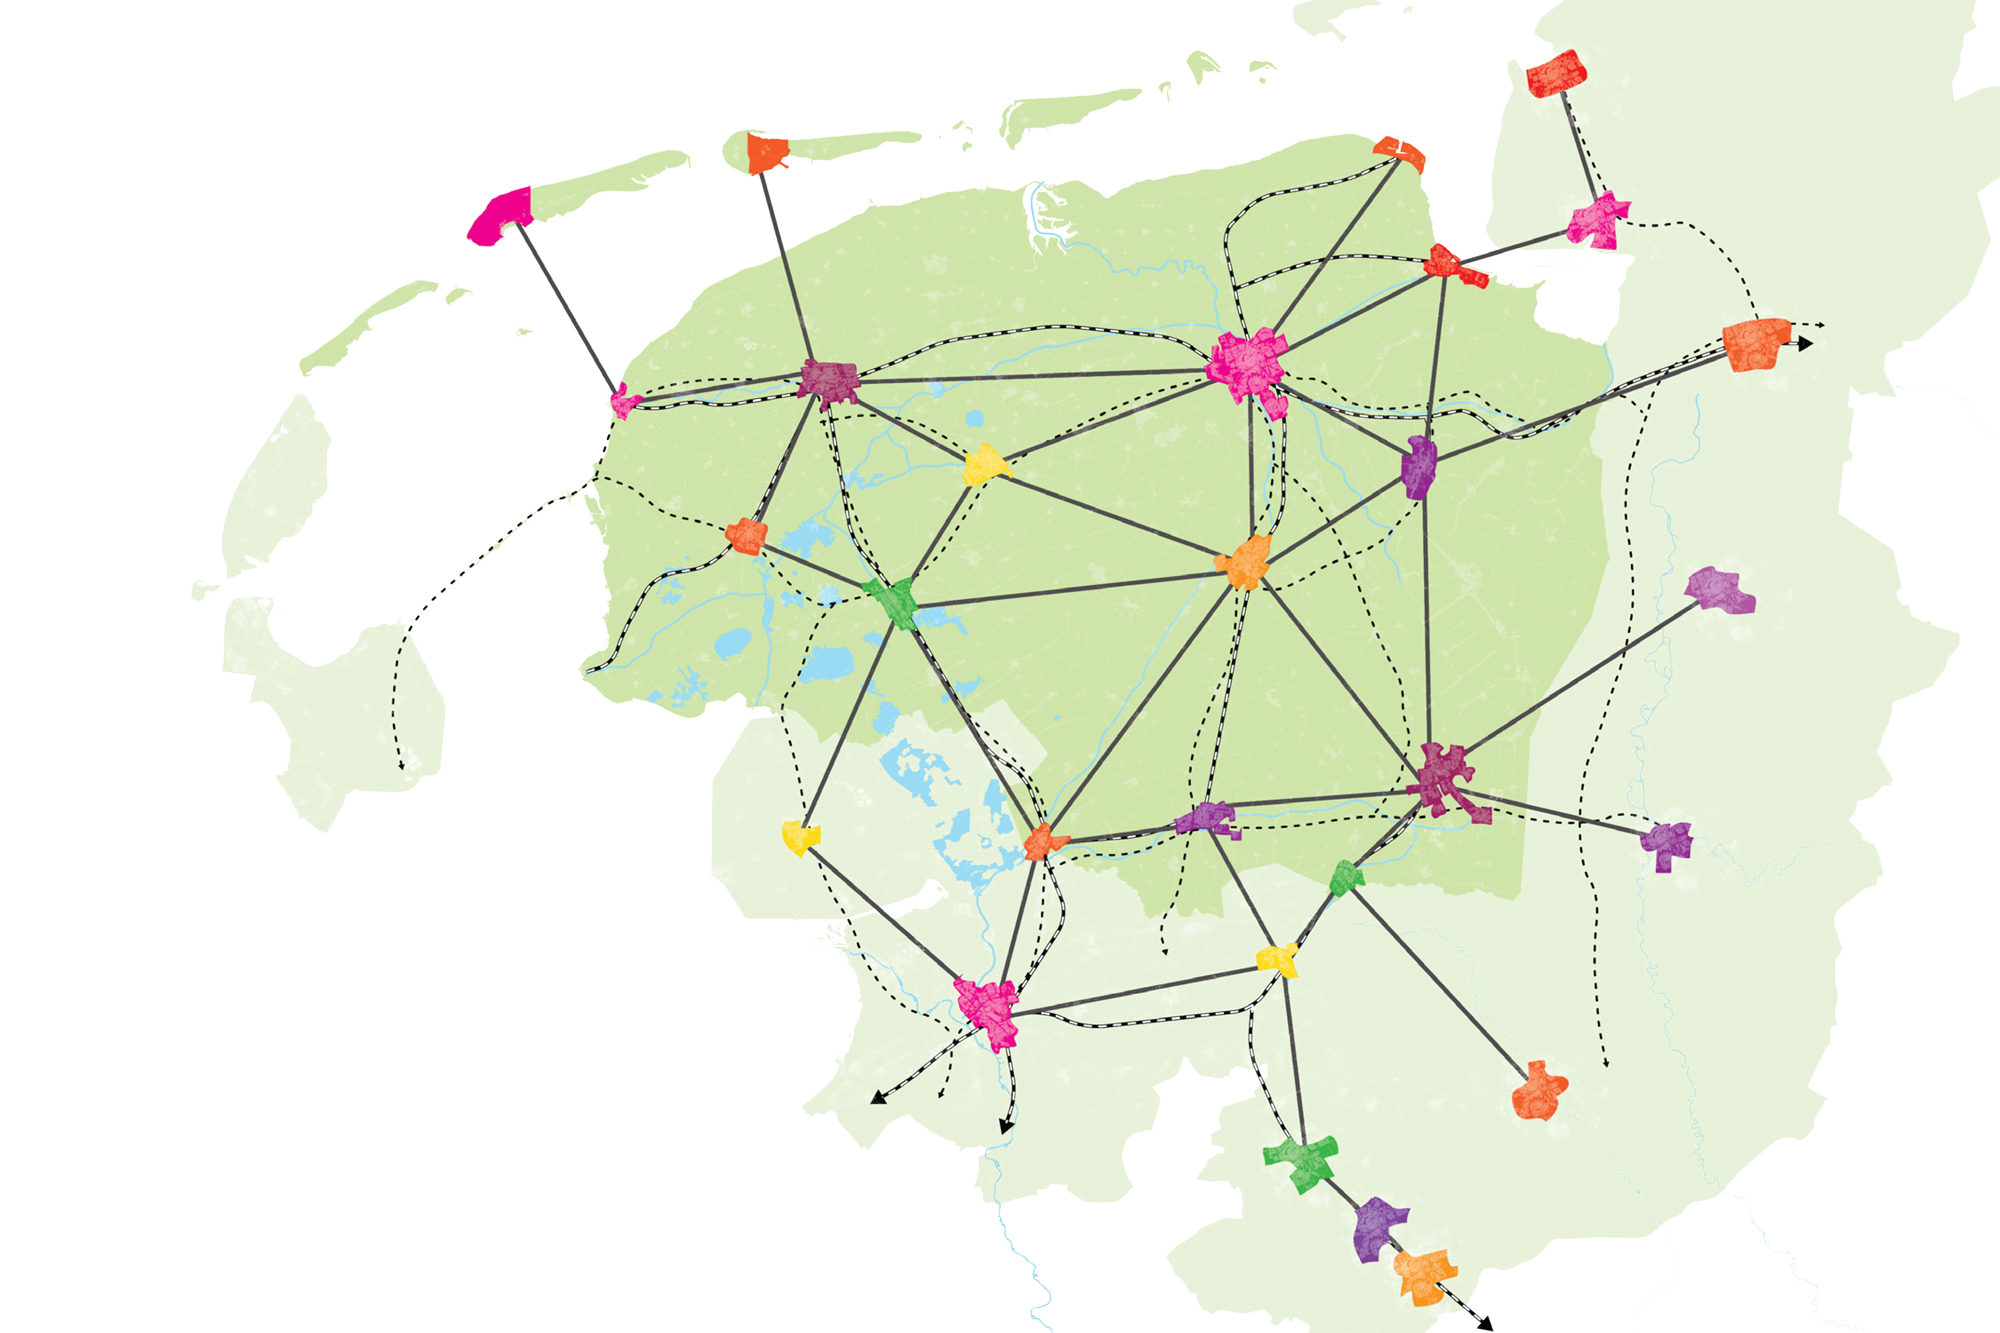 Study on Empowering the Northern Netherlands 8